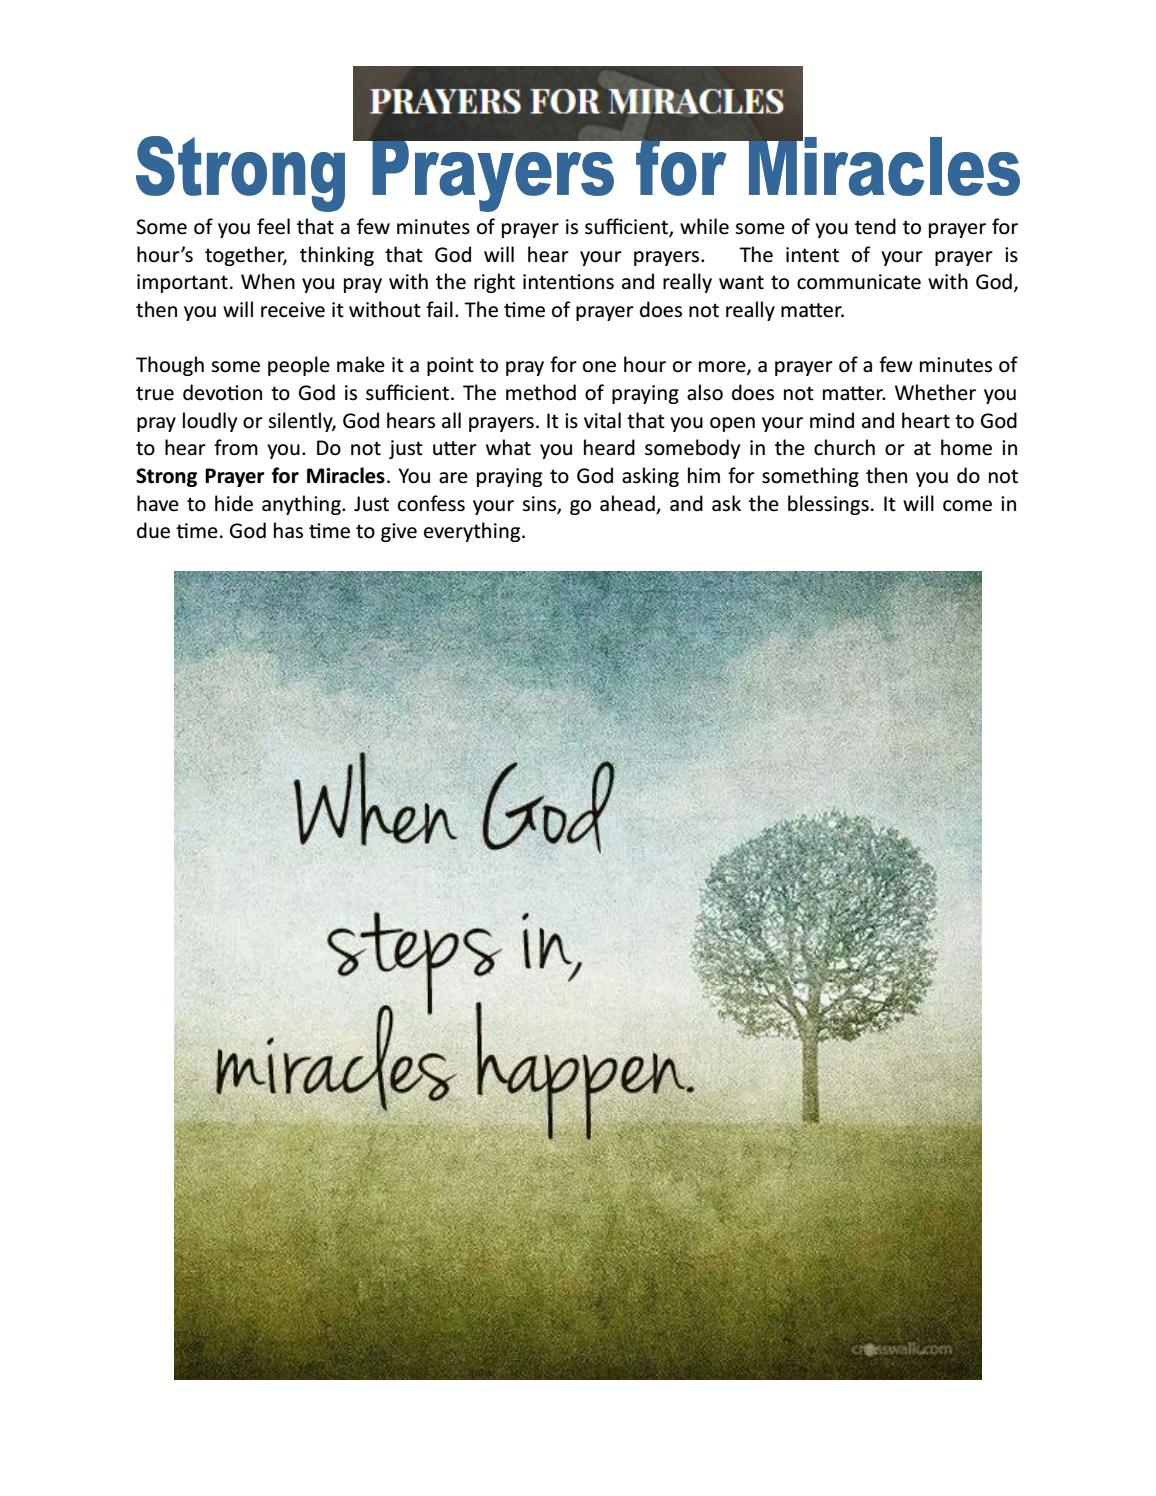 Strong Prayers for Miracles by Prayers for Miracles - issuu